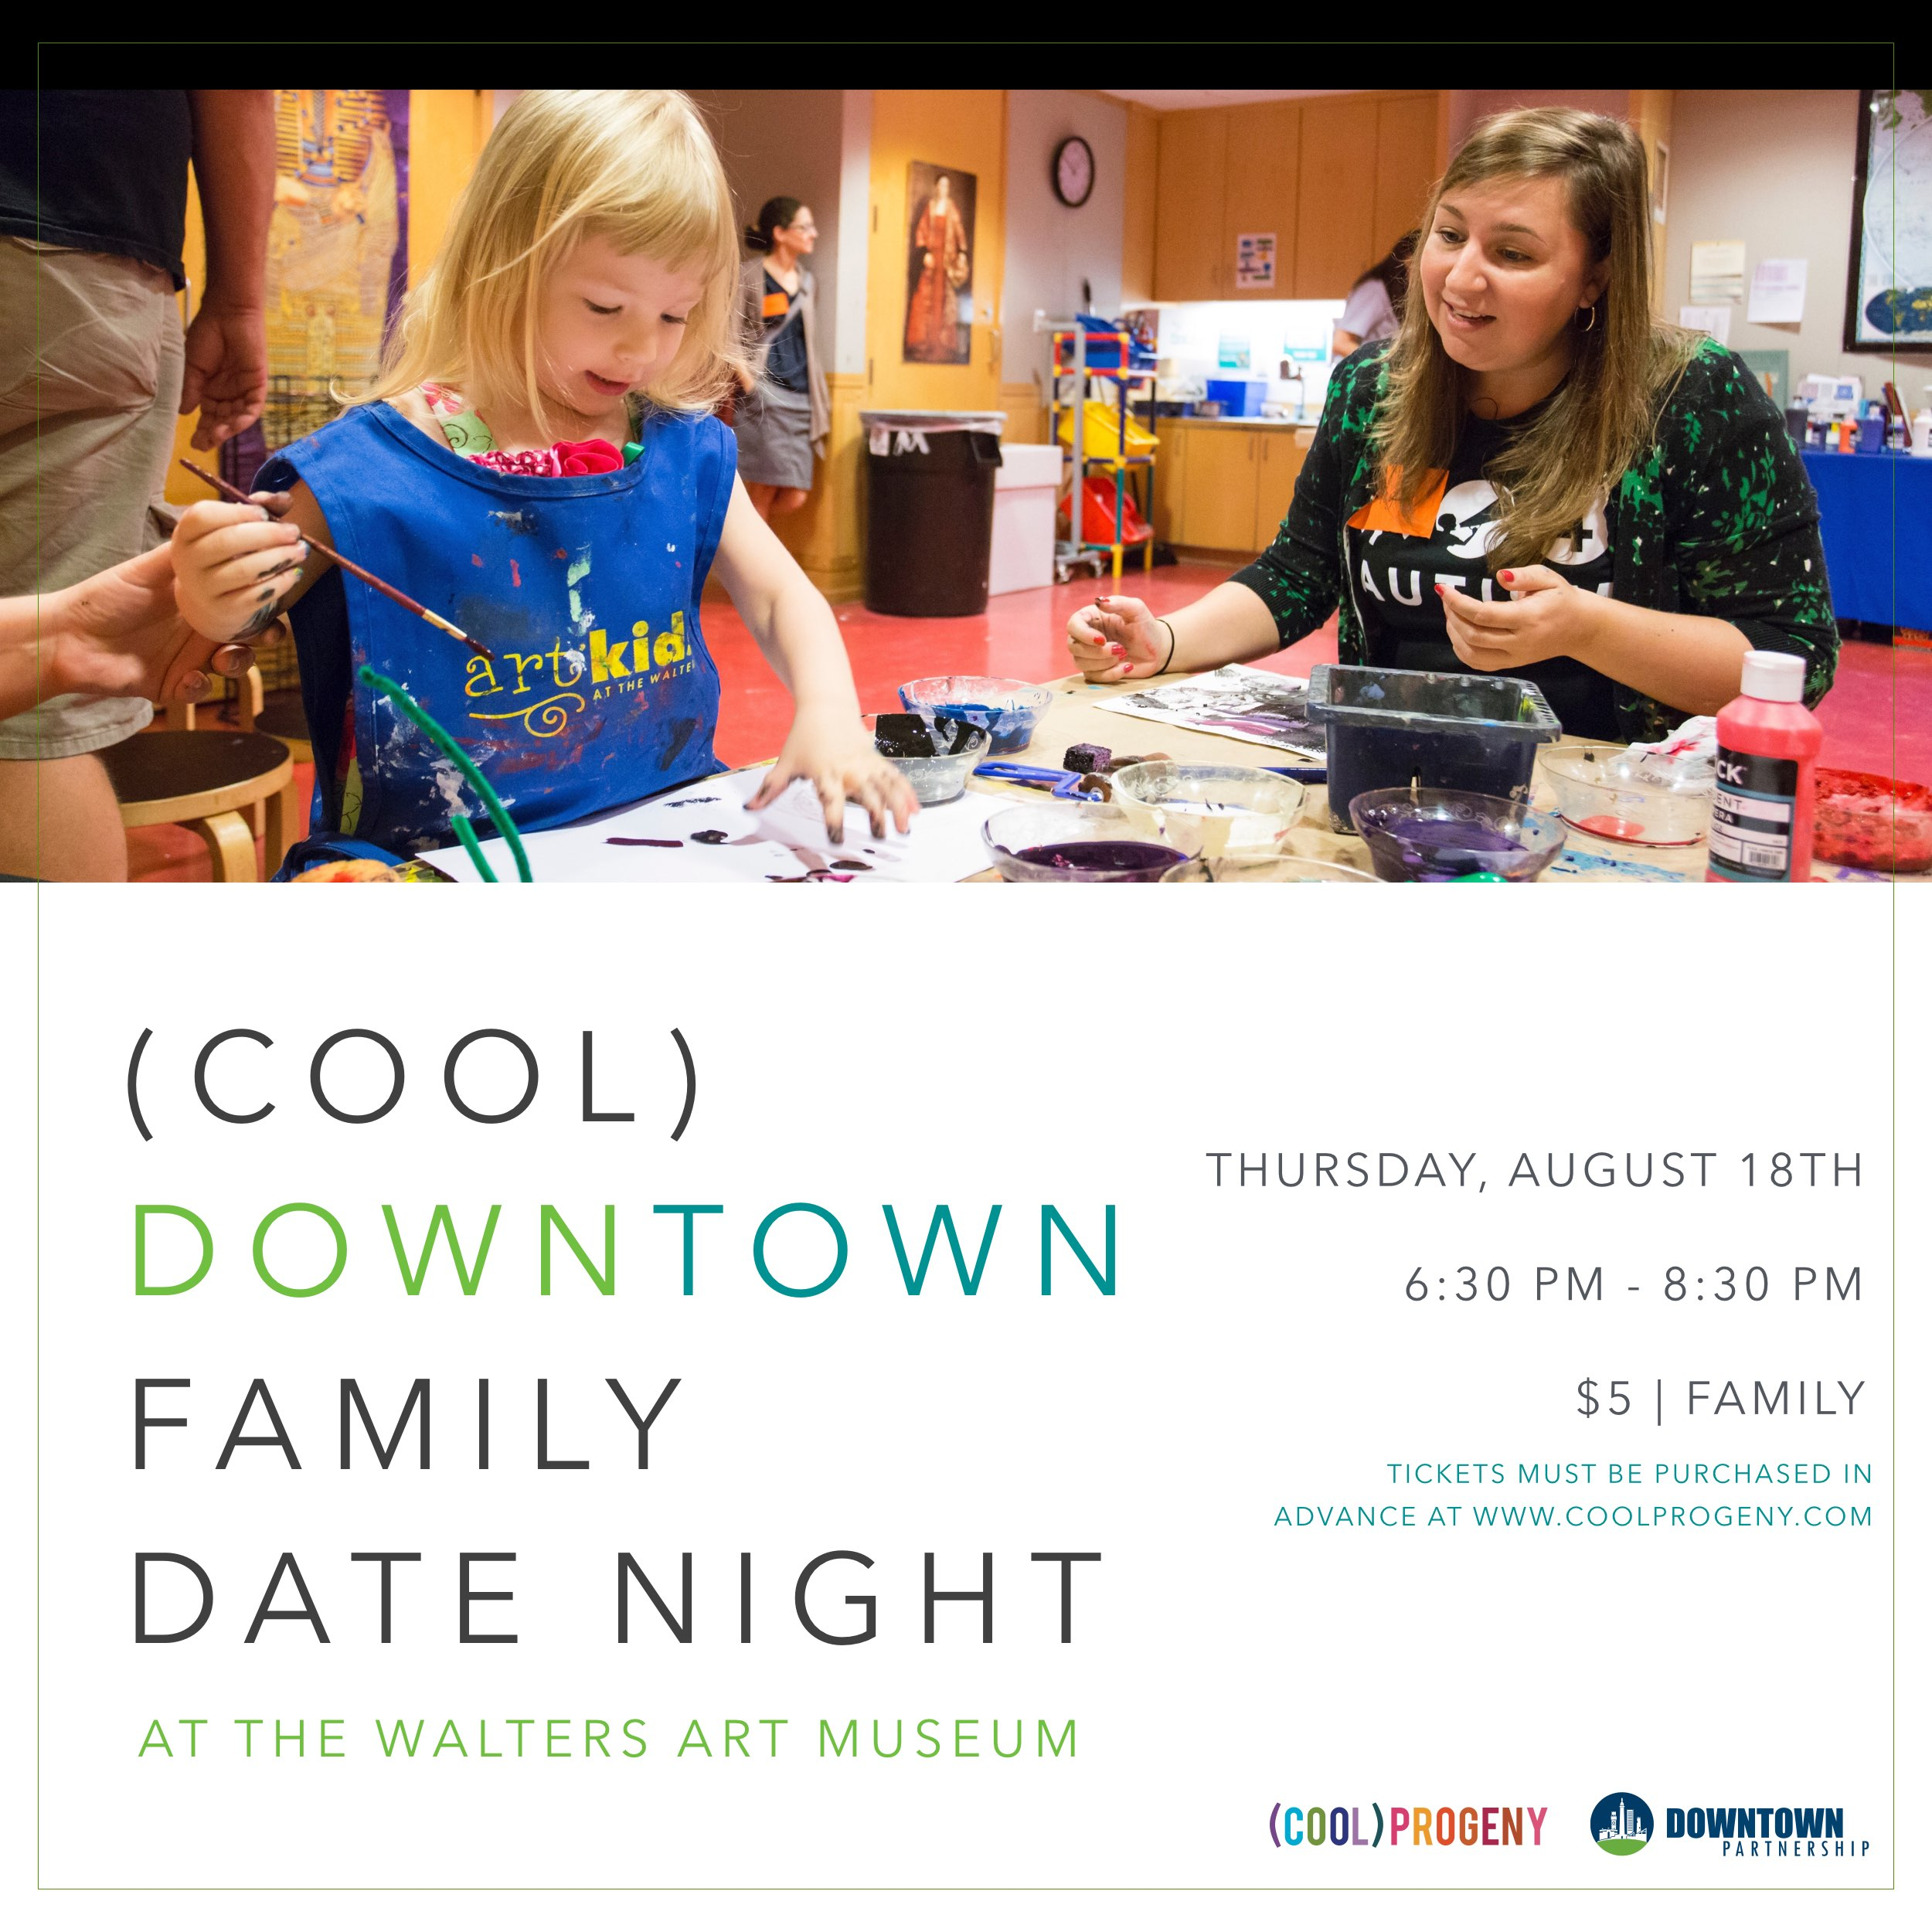 Downtown Family Date Night at The Walters Art Museum - (cool) progeny